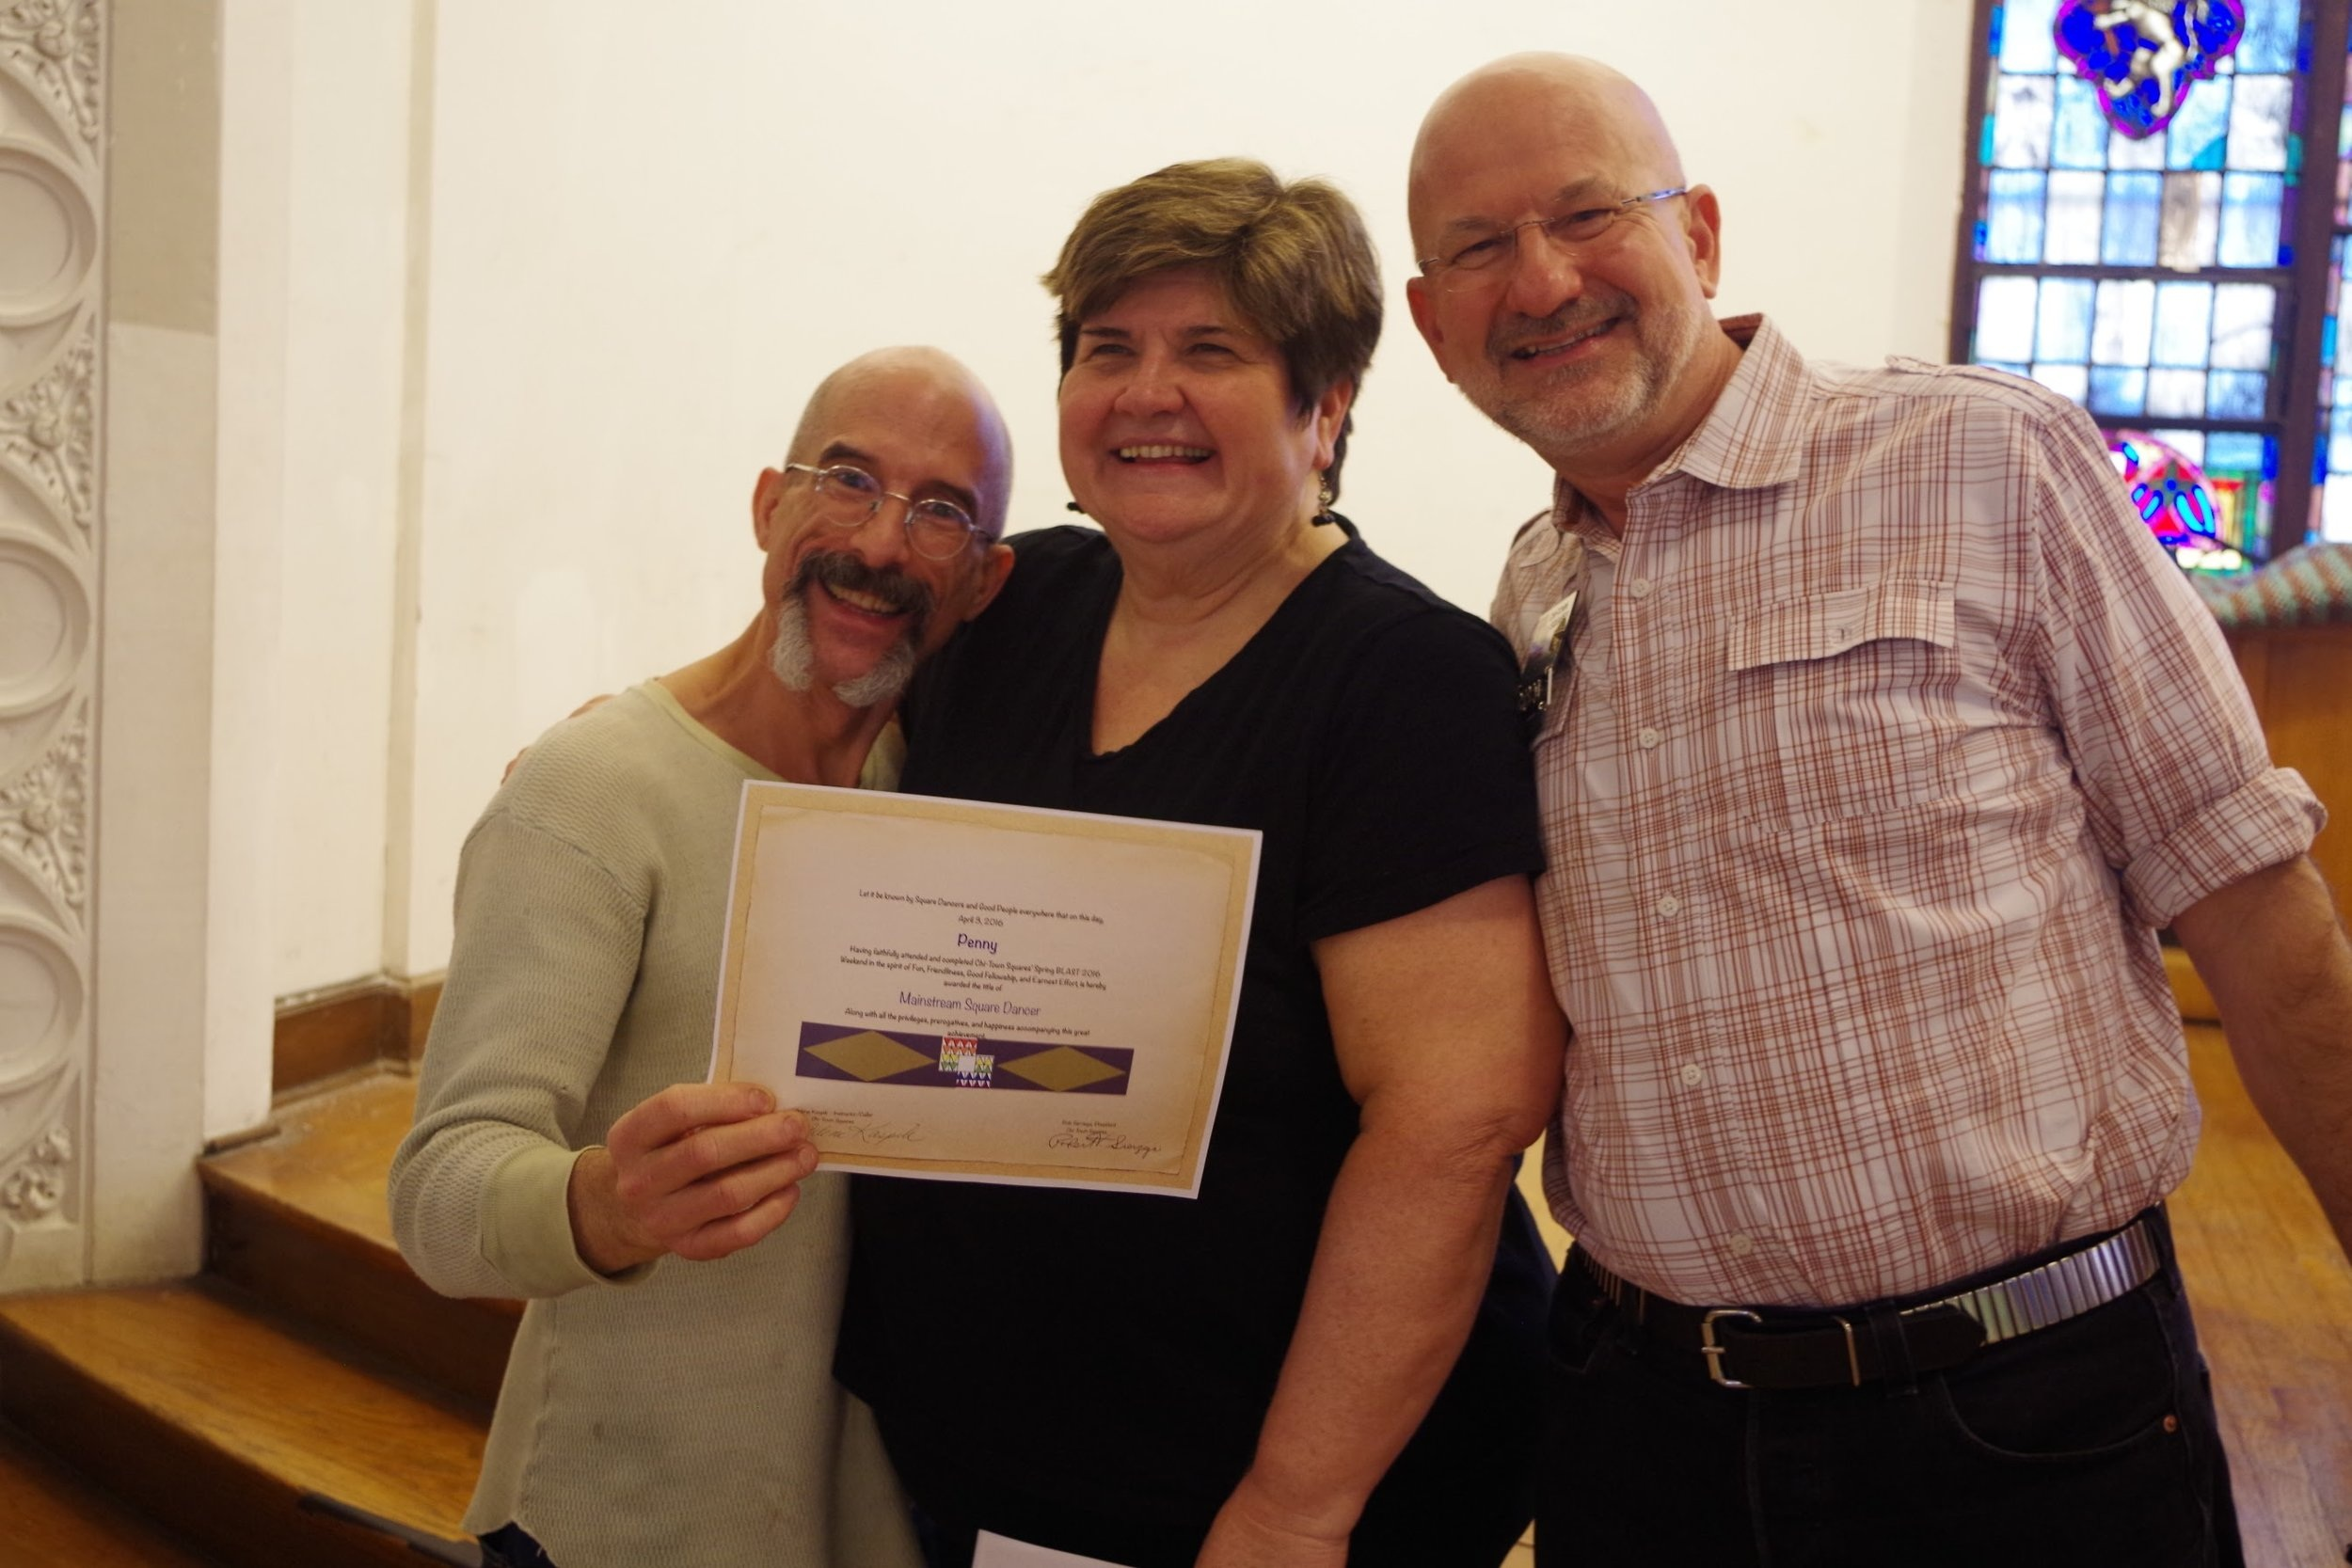 Penny receiving his Mainstream Blast graduation certificate, with Club Caller Arlene Kaspik and Board President Rob Sierzega. April 3, 2016.